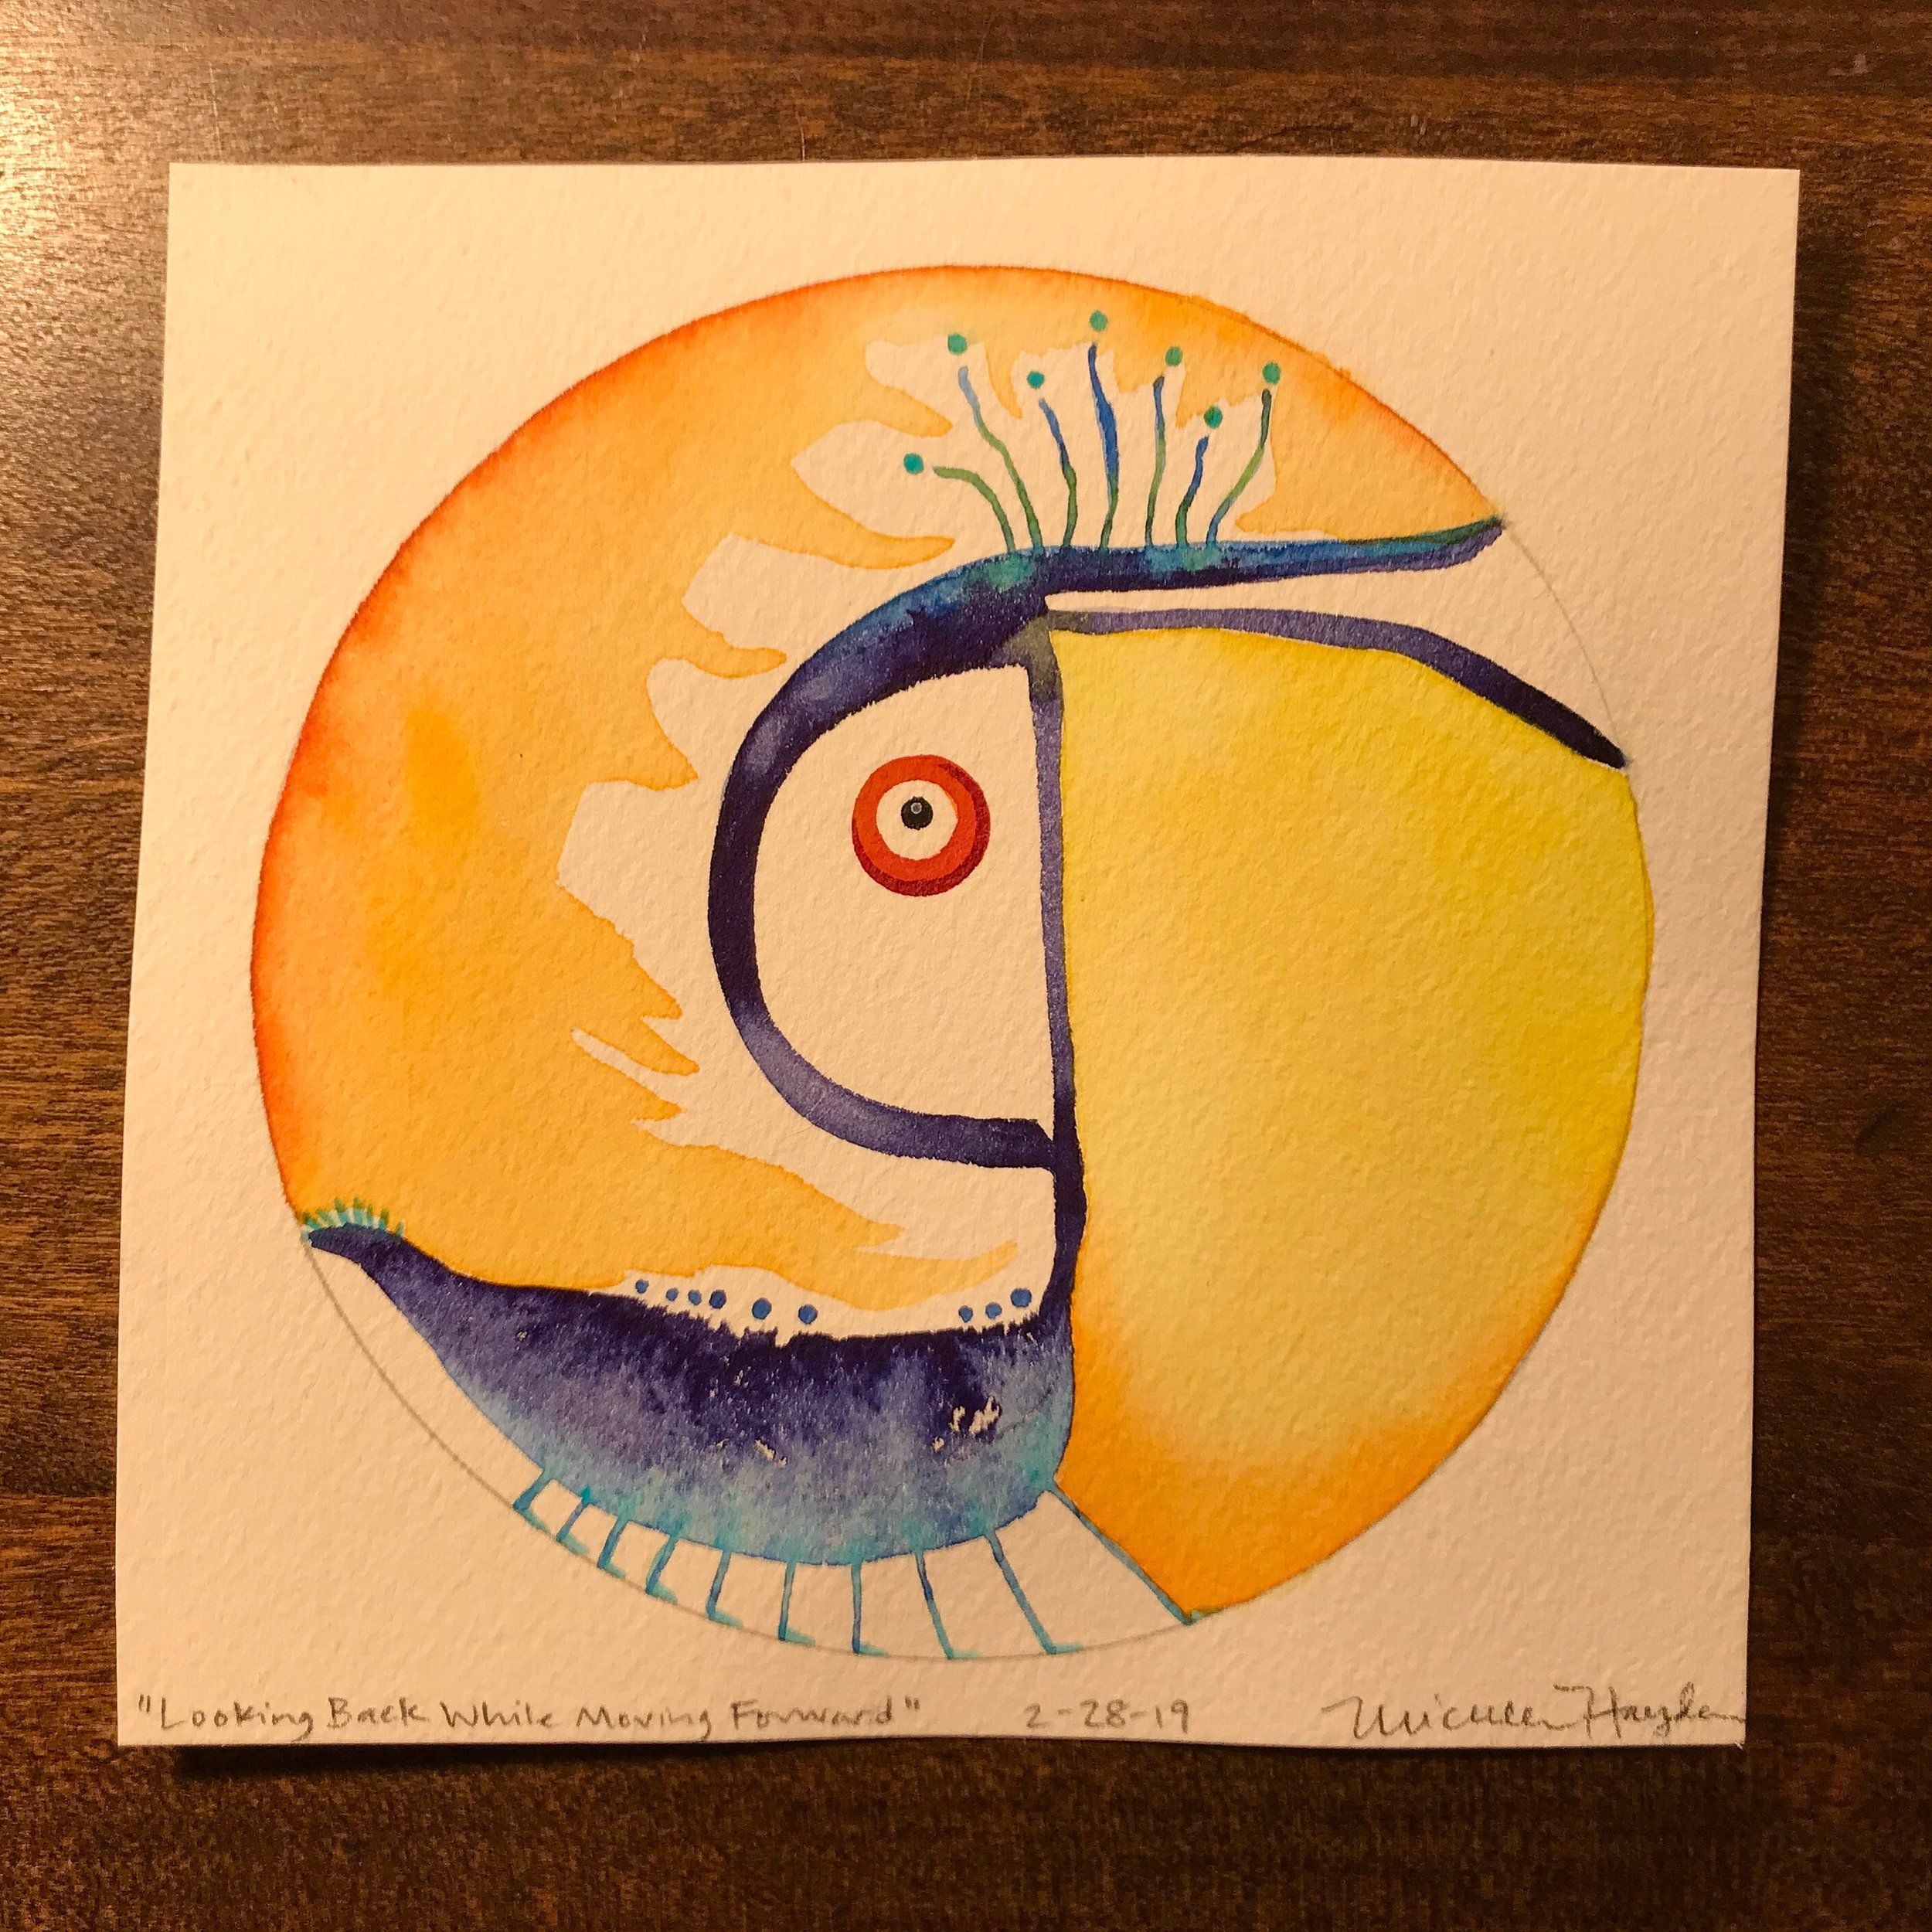 """""""It is with mixed emotions that I post today's circle, completing the 380th painting (did 15 sporadically before committing to the daily) in a bit over a year. When I see that number, it is hard to believe that the goal has been met. What started as a morning ritual to explore watercolor within the circle and writing words alongside to deepen and practice sharing, has evolved into an experience much more profound than I can write in this paragraph (long as they can be, at times, haha). I am deeply grateful for what was grown far beyond my expectations, bringing me connection, deep inner work, healing, courage, and joy in the privilege of shared humanity. I will share more depth soon, but offer my sincere thanks to each of you for following along and sharing in the journey with me, whether in word, witness, or spirit— I am very aware that it would not have been the same without you! It seems fitting that this circle which closes the daily loop, at least, is filled with a bit of spunk and oddity, reflecting the practice of balancing past, present, and future, as well as the light and dark, so that we can all keep going... much love to you all!"""""""